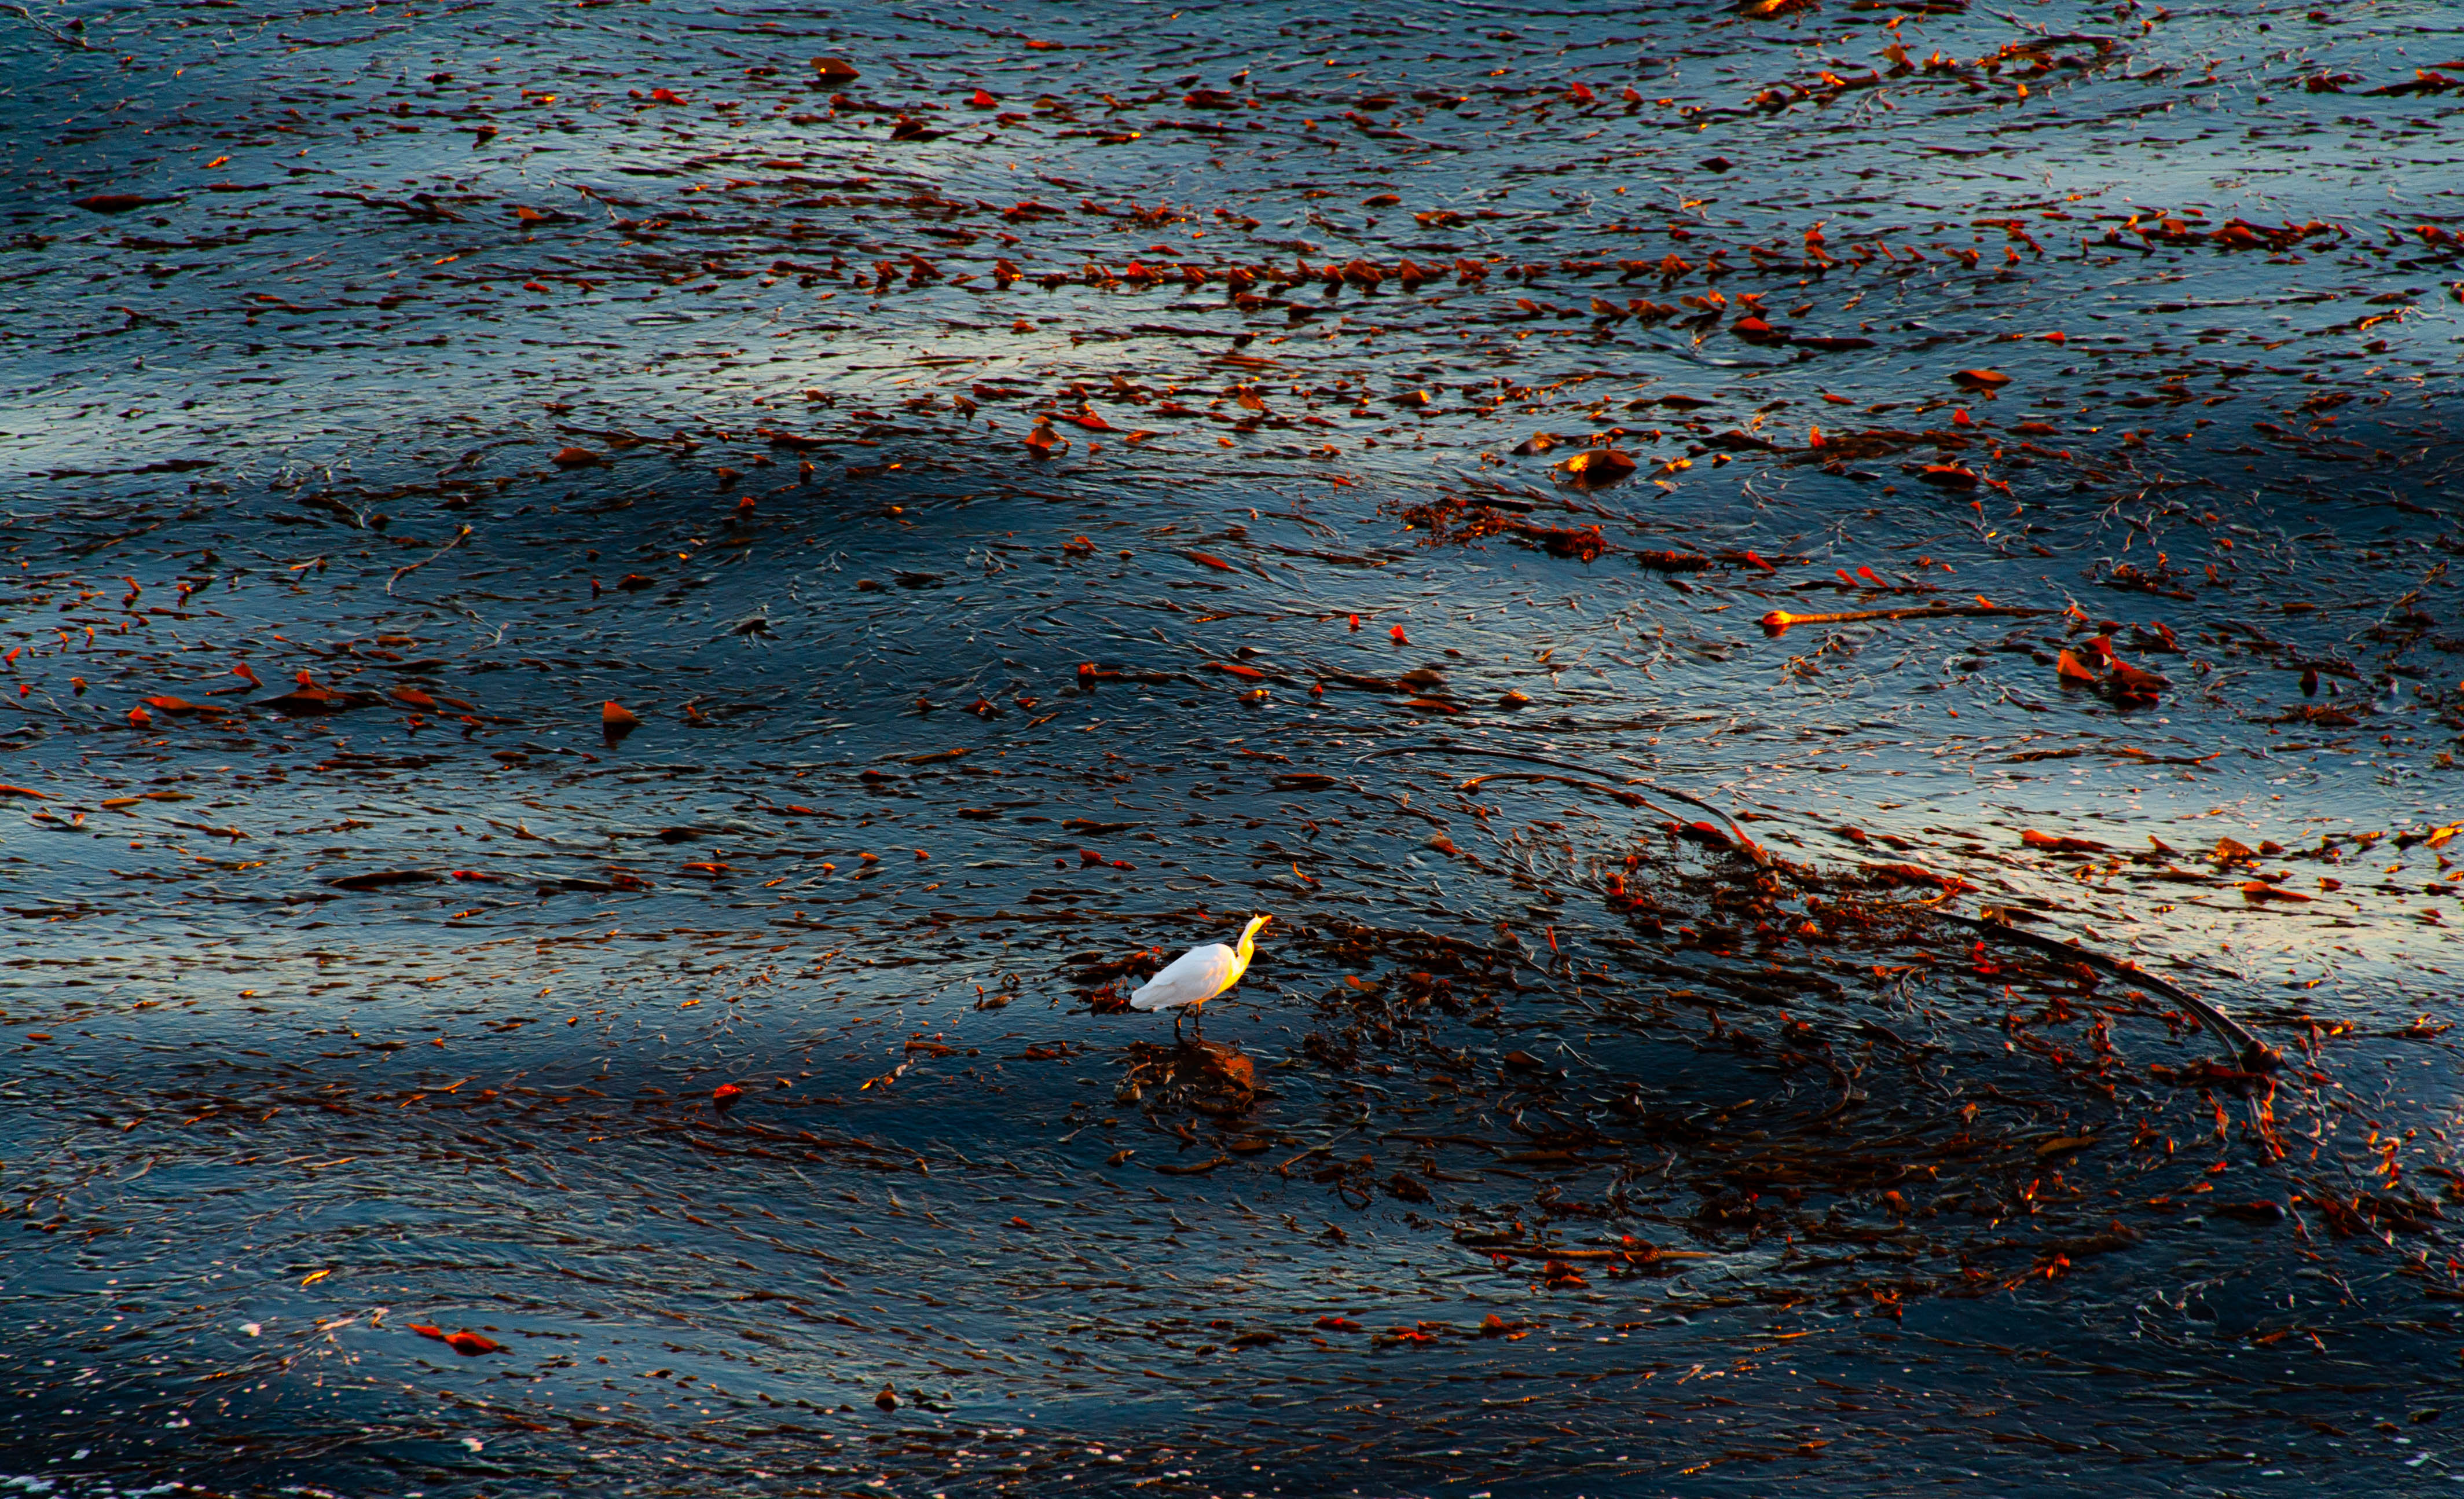 A bird sits in the middle of the waves in the Pacific Ocean